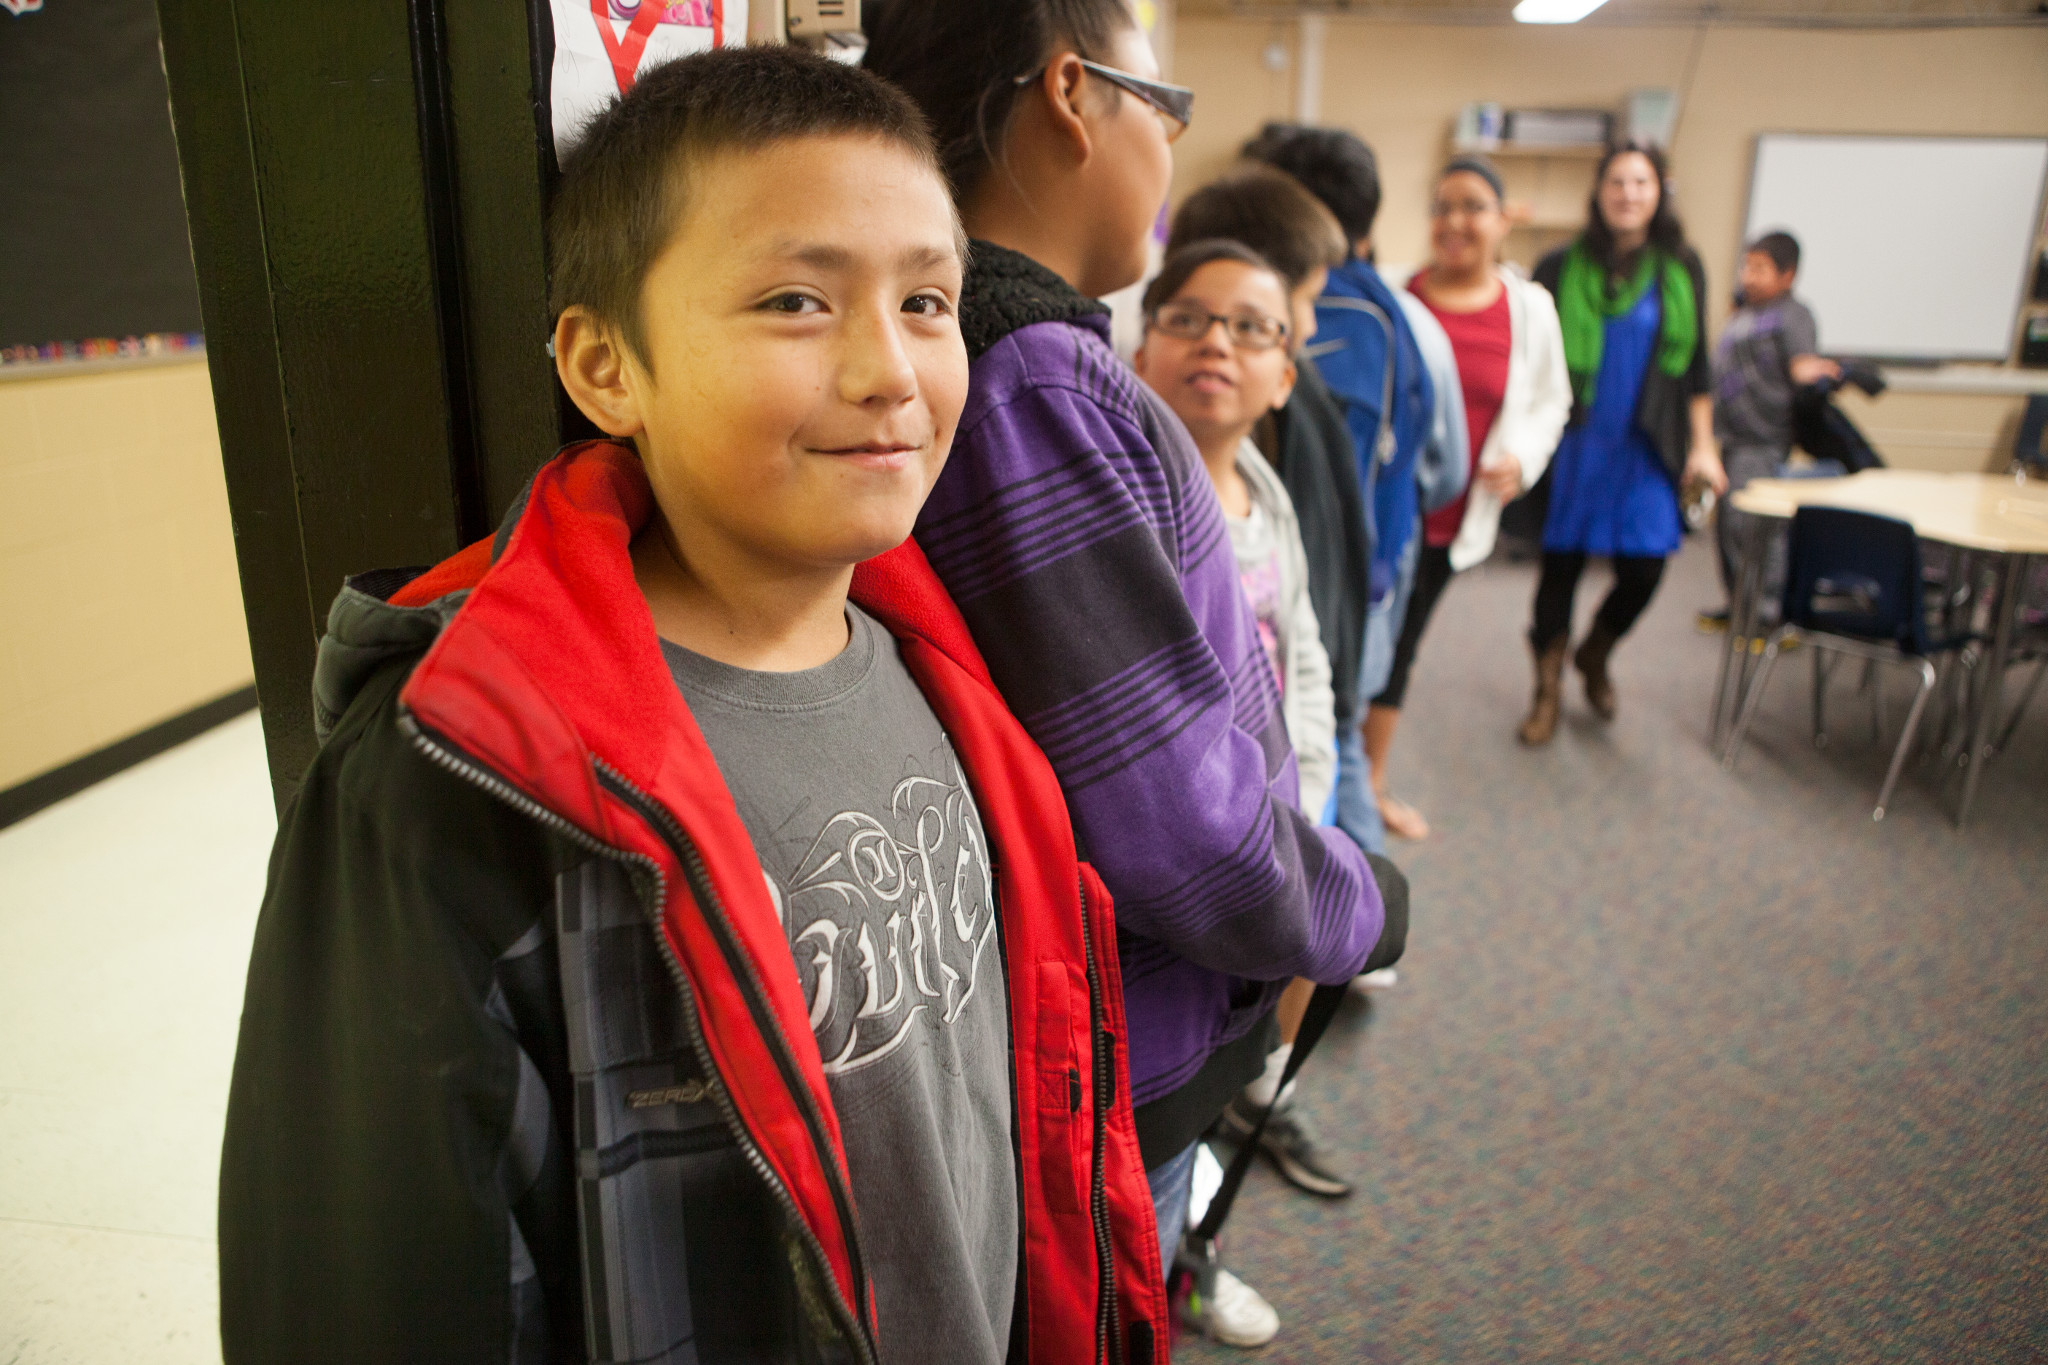 A line of middle-school students standing in a classroom, with one boy with short brown hair and a gray shirt smiling.